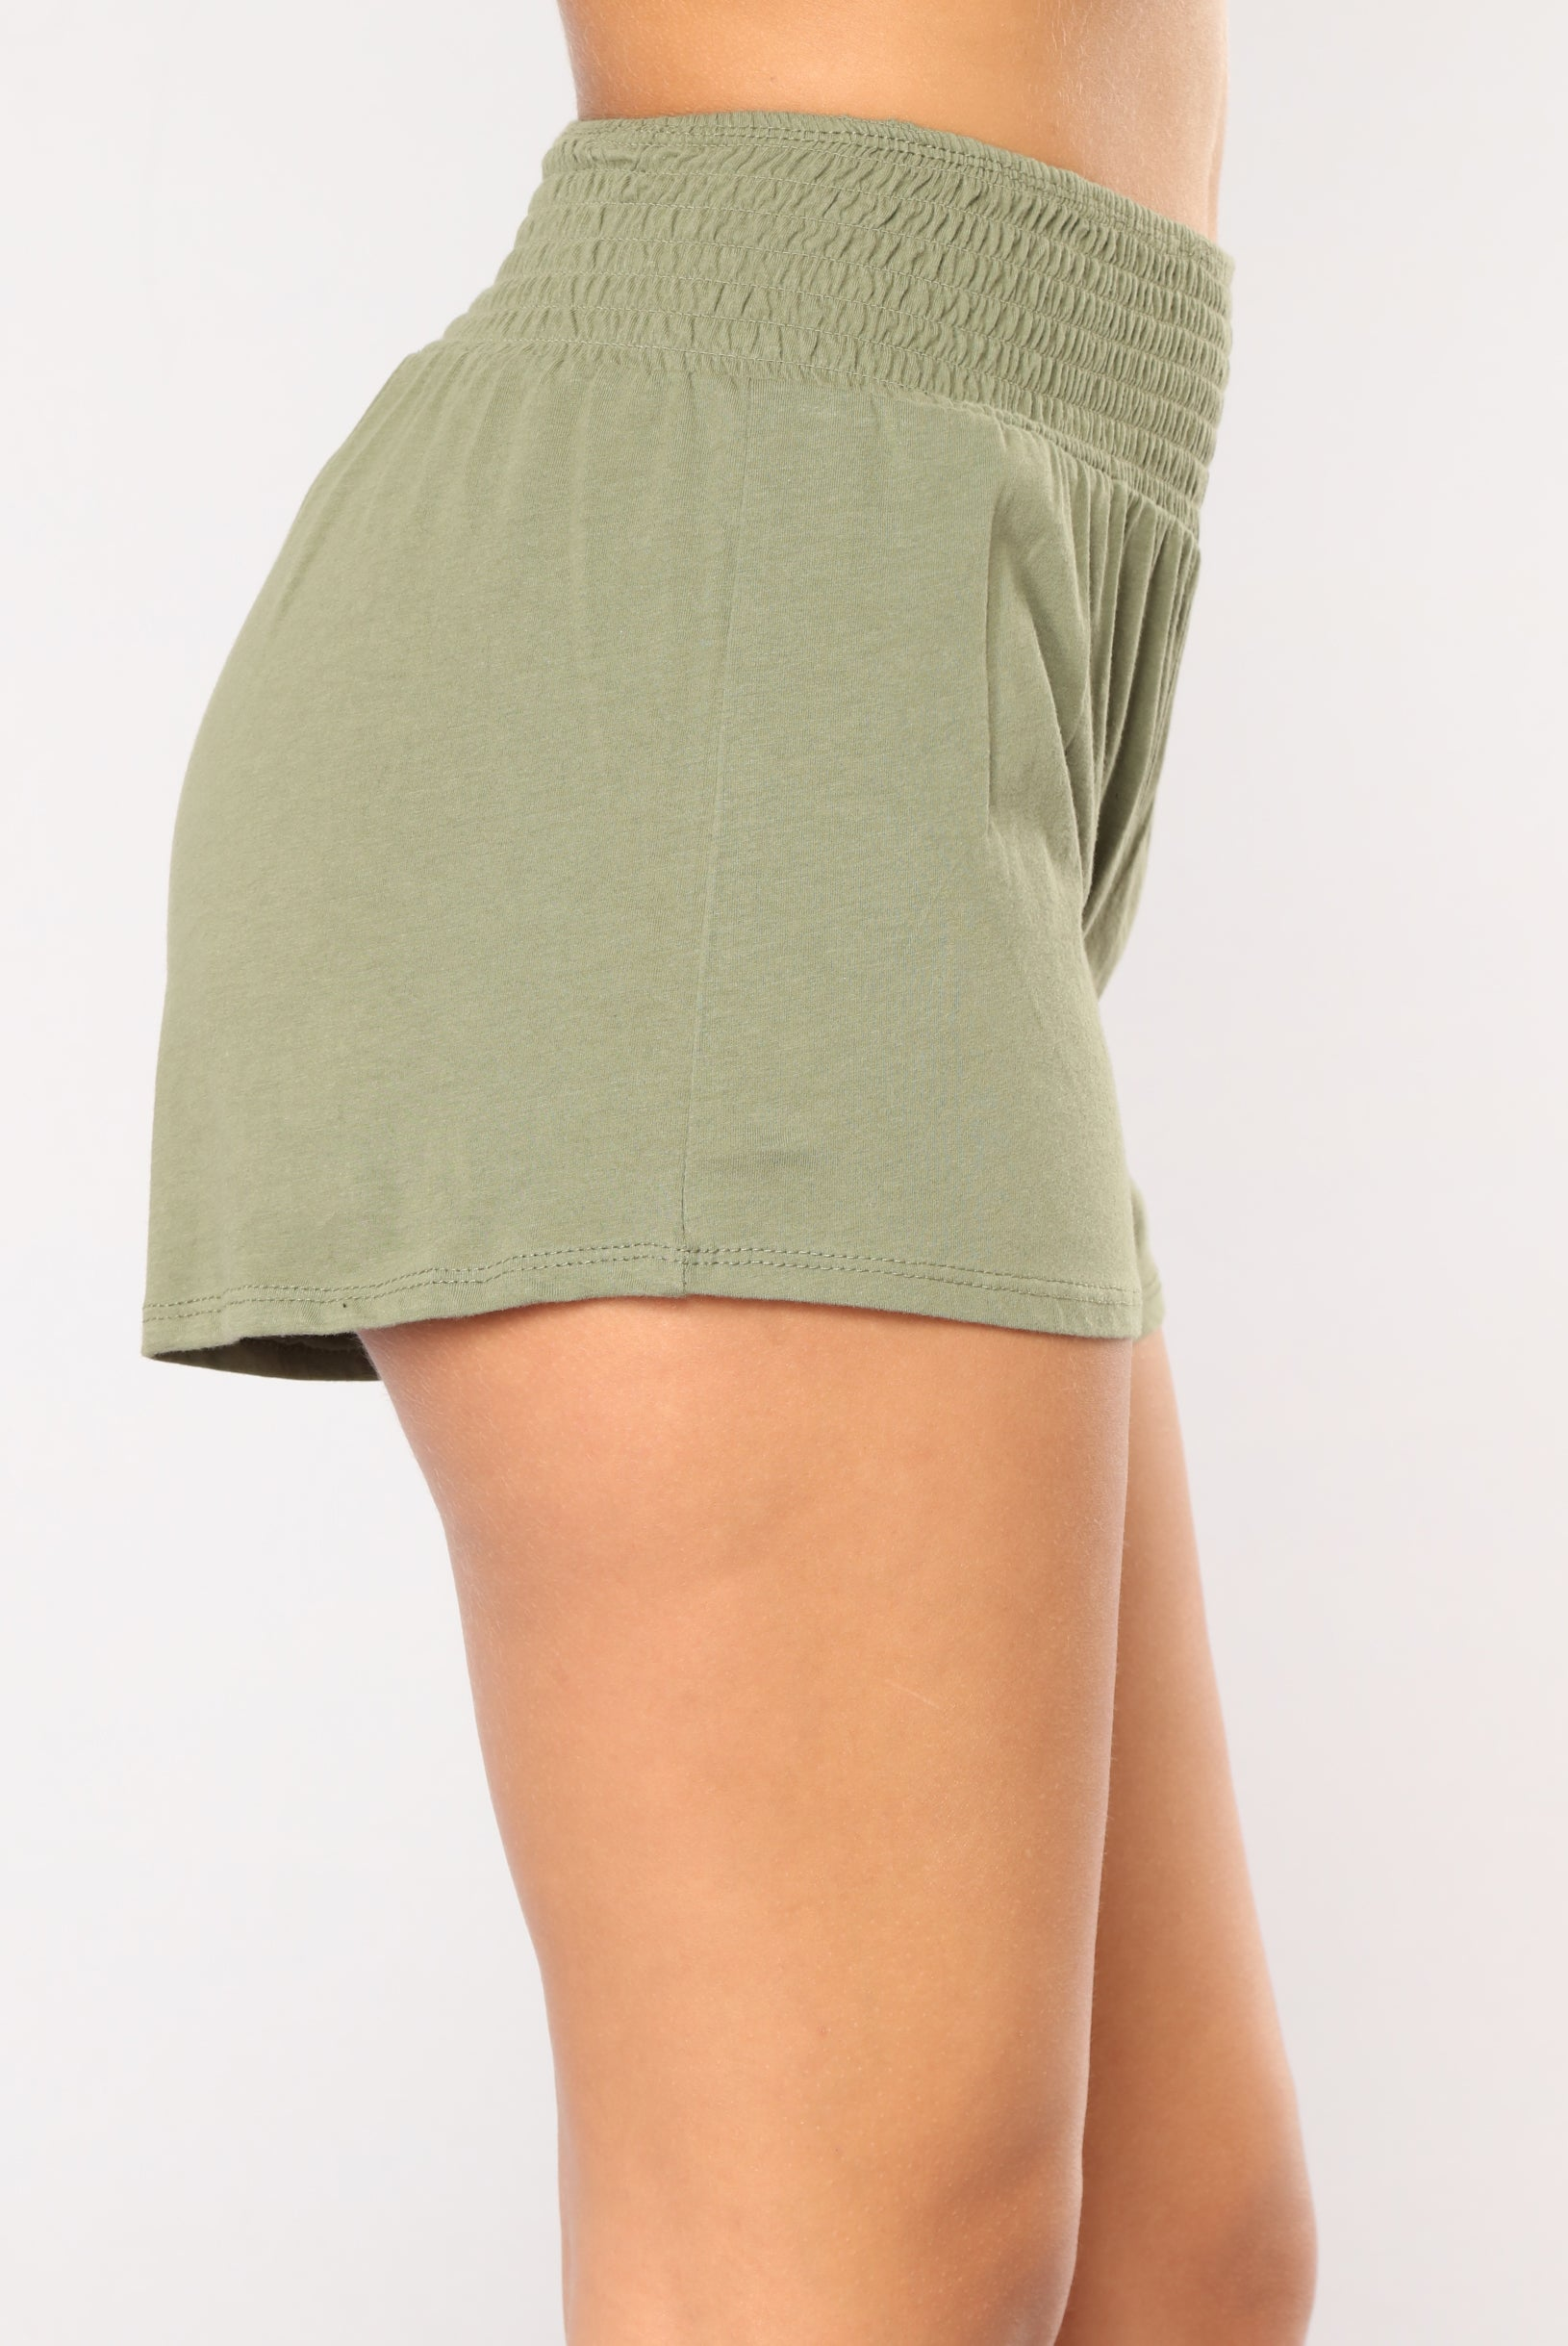 4b341e2d9f9 Simple Kind Of Life Smocked Shorts - Olive